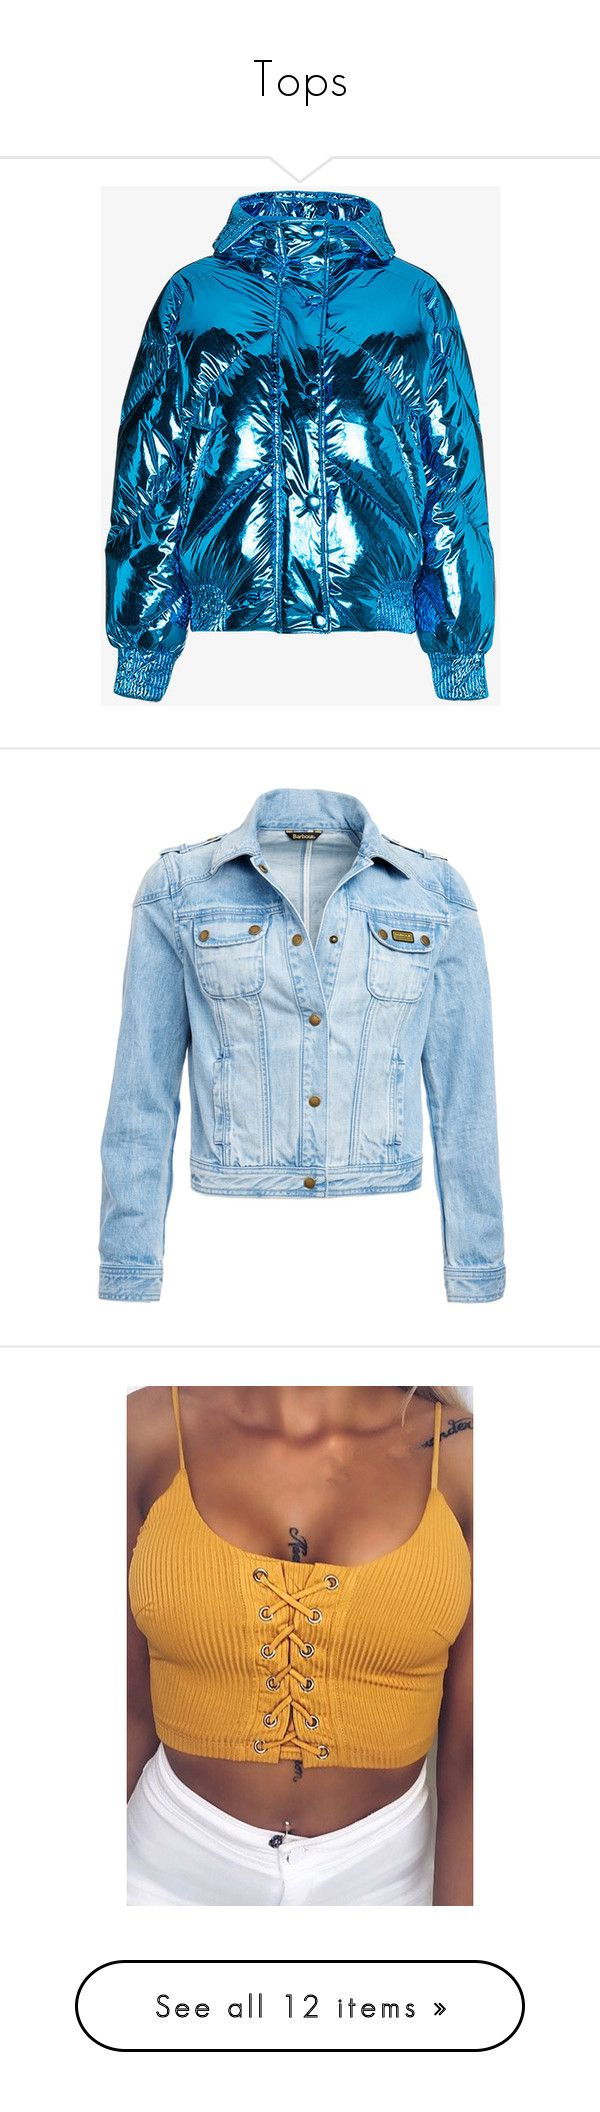 """""""Tops"""" by diamonddolll ❤ liked on Polyvore featuring outerwear, jackets, blue, blue jackets, metallic puffer jacket, puffer jacket, cropped jacket, blue puffer jacket, denim sports jacket and fitted denim jacket"""